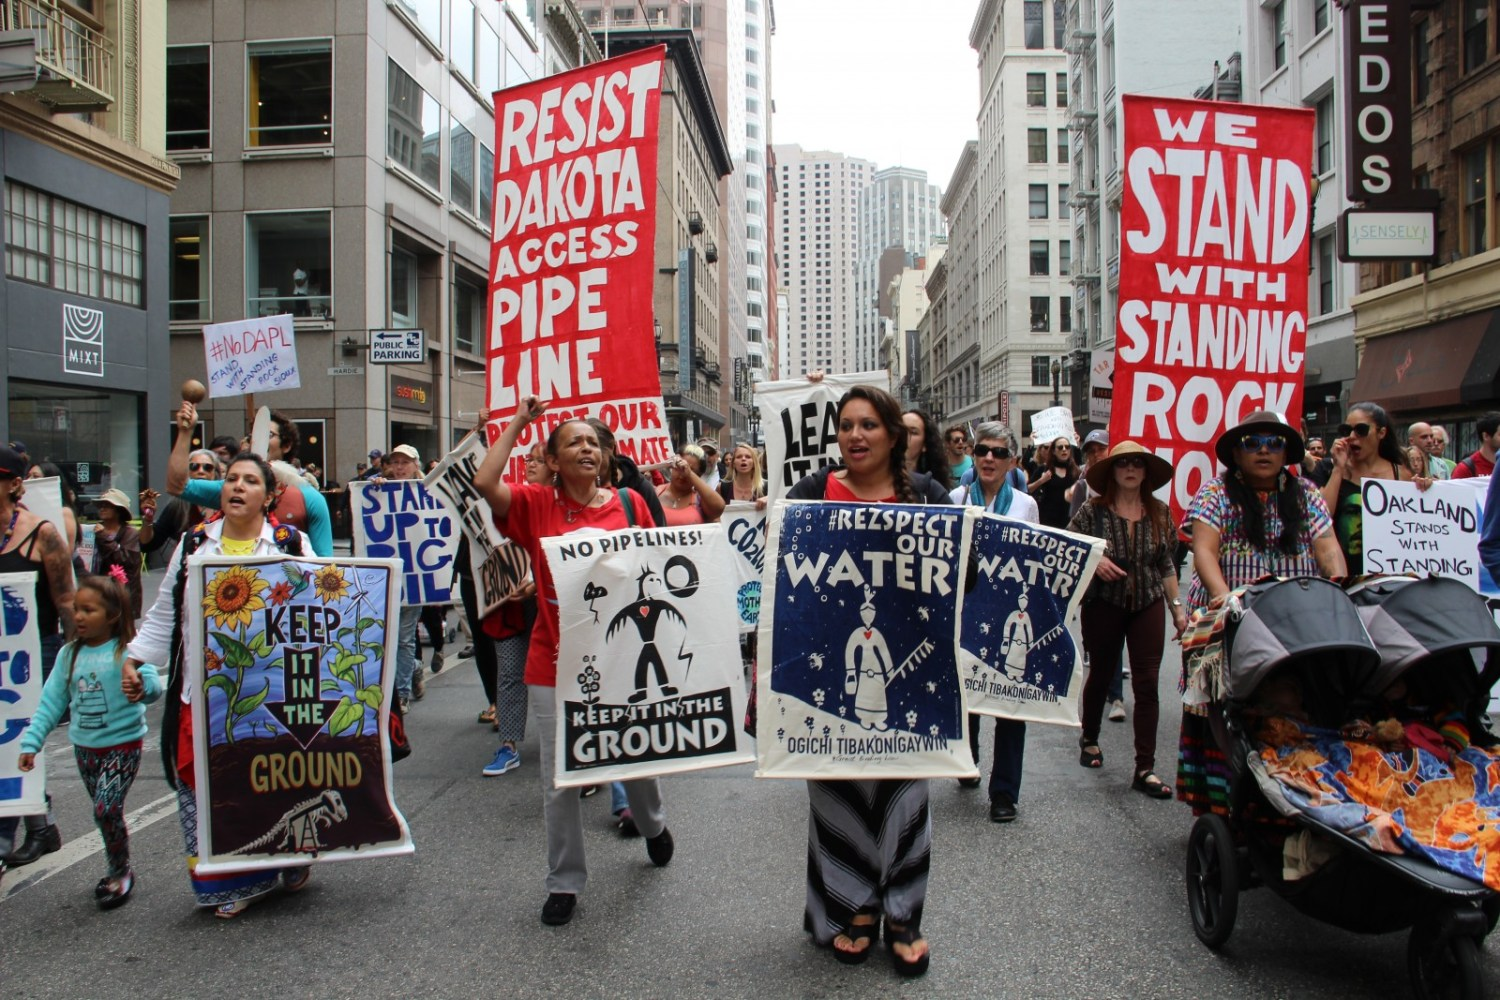 Protesters marched in San Francisco last week against the Dakota Access pipeline to show support for the Standing Rock Sioux. The pipeline is under construction near the tribe's land in North Dakota. Photo courtesy Peg Hunter via Flickr Creative Commons.